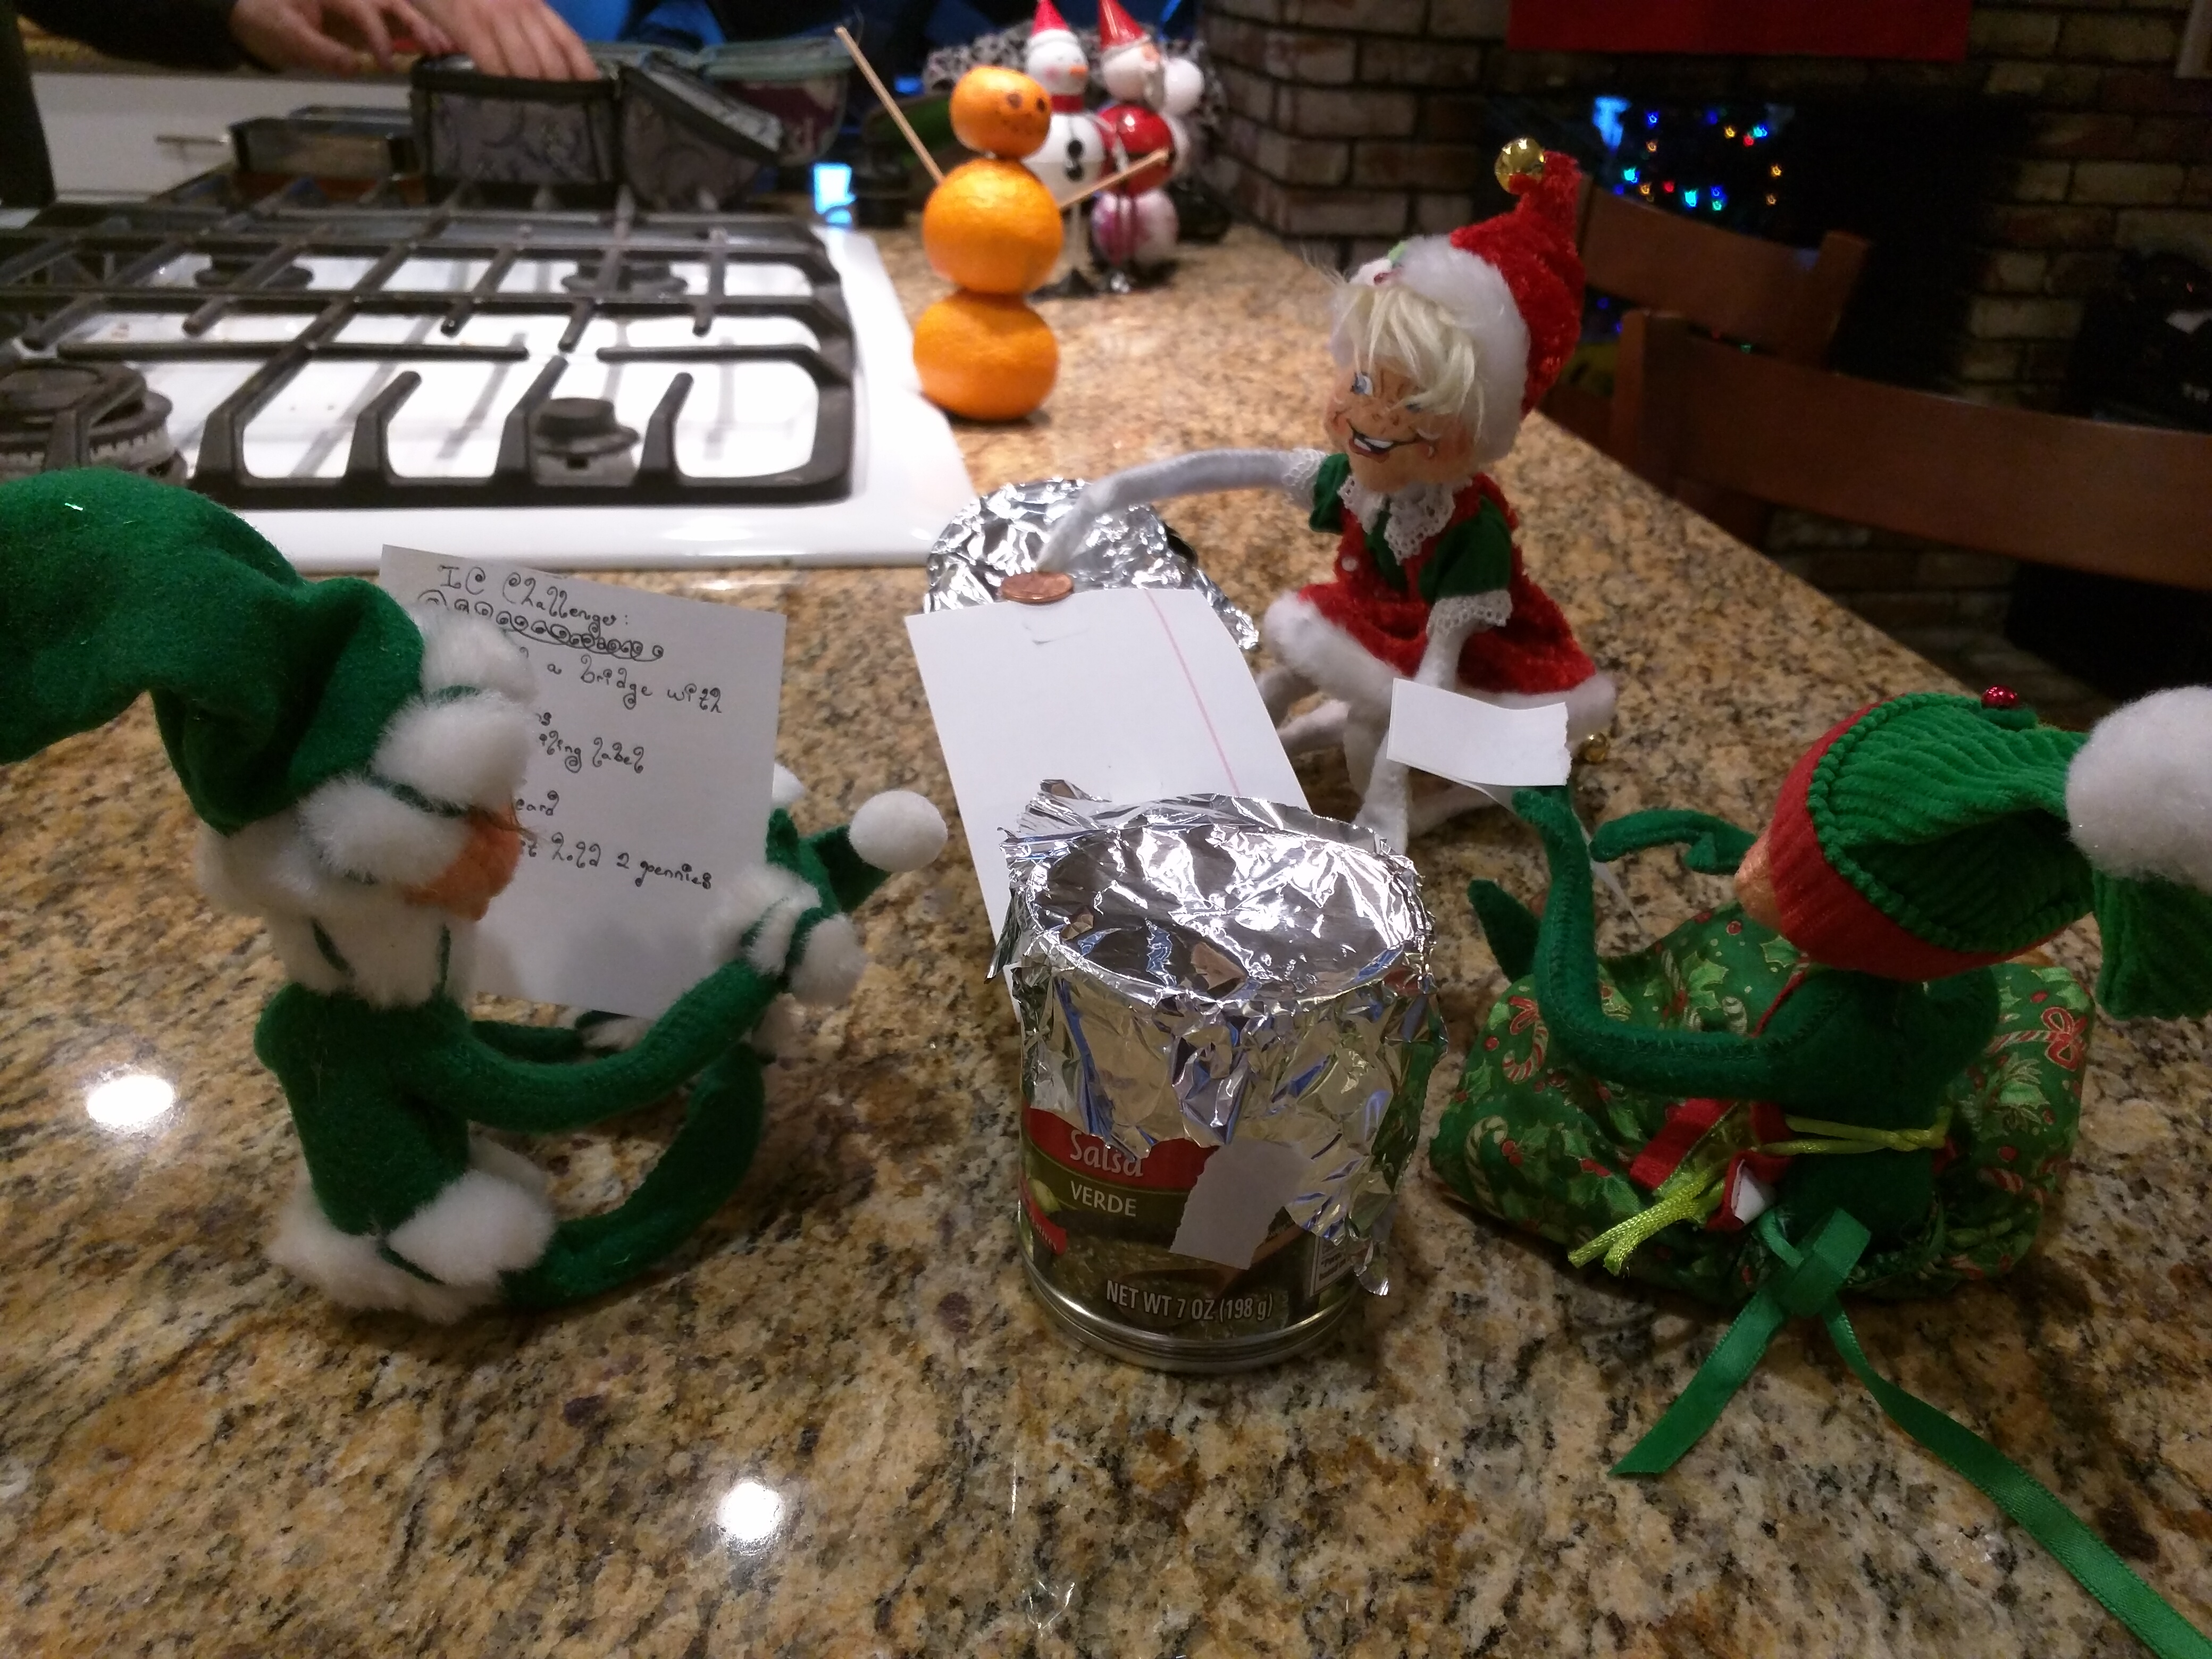 Elves getting into the DI Spirit and cranking some ICs